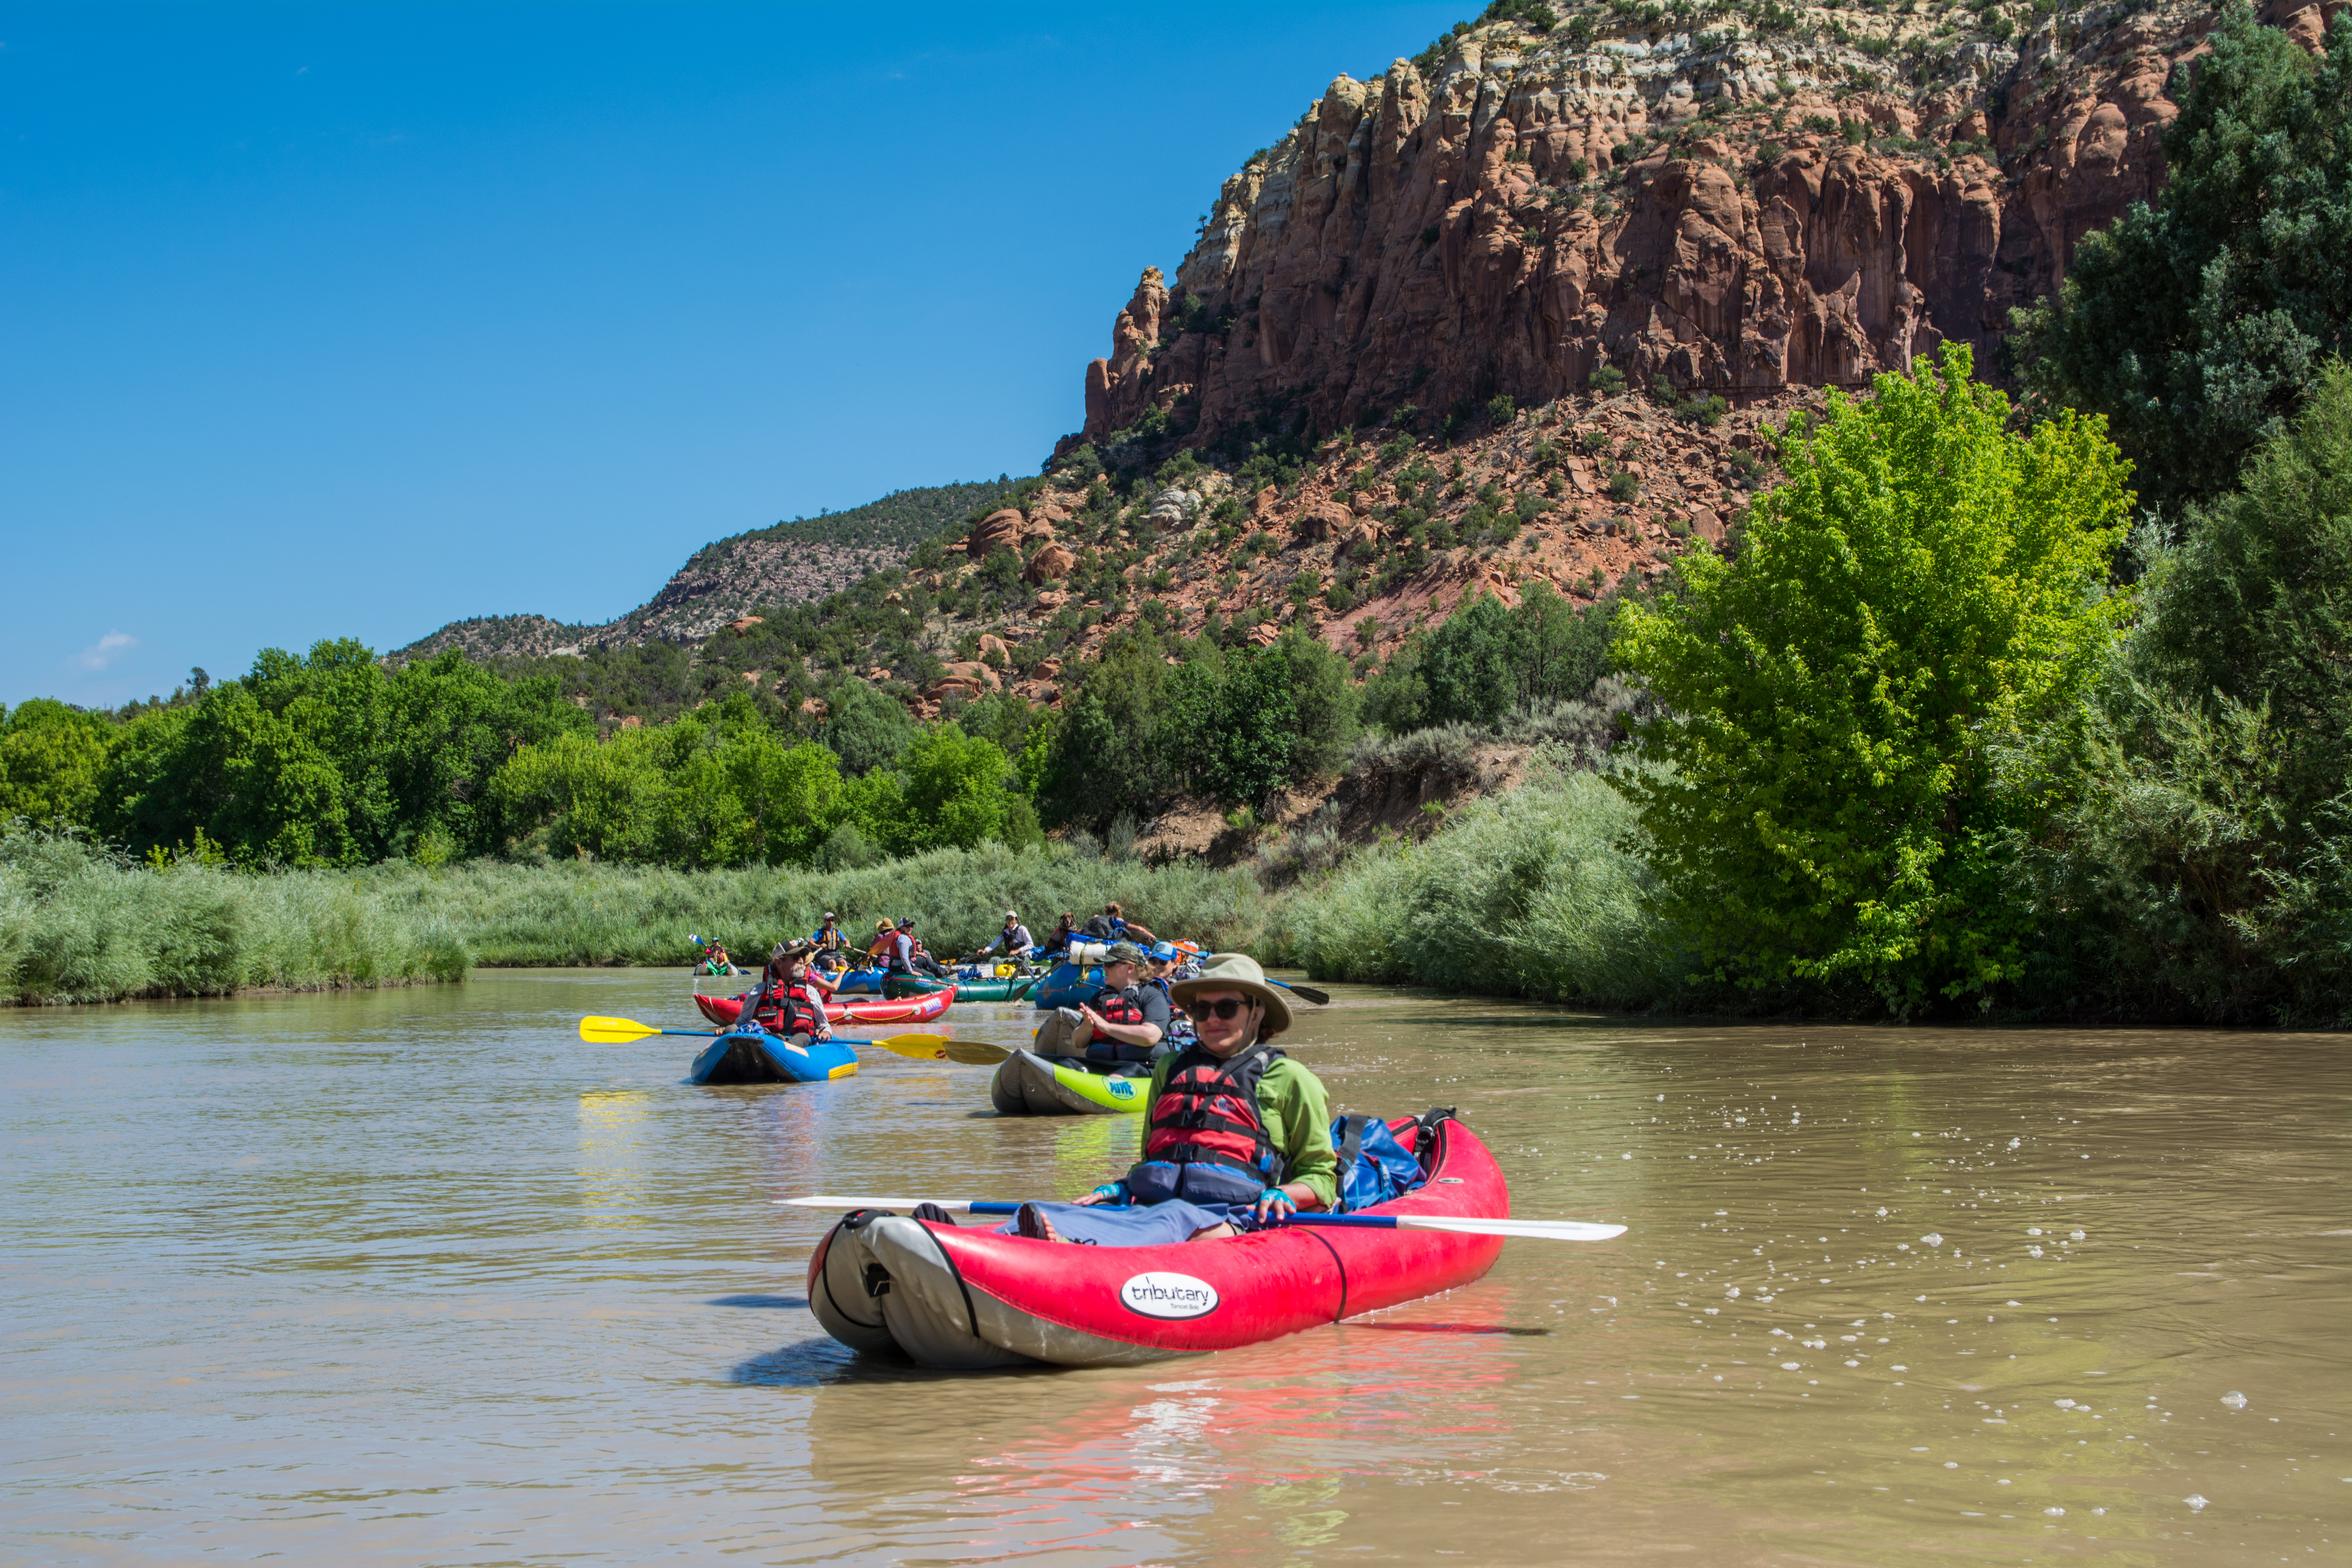 Kirsten Neff takes to the water on the Rio Chama in New Mexico.